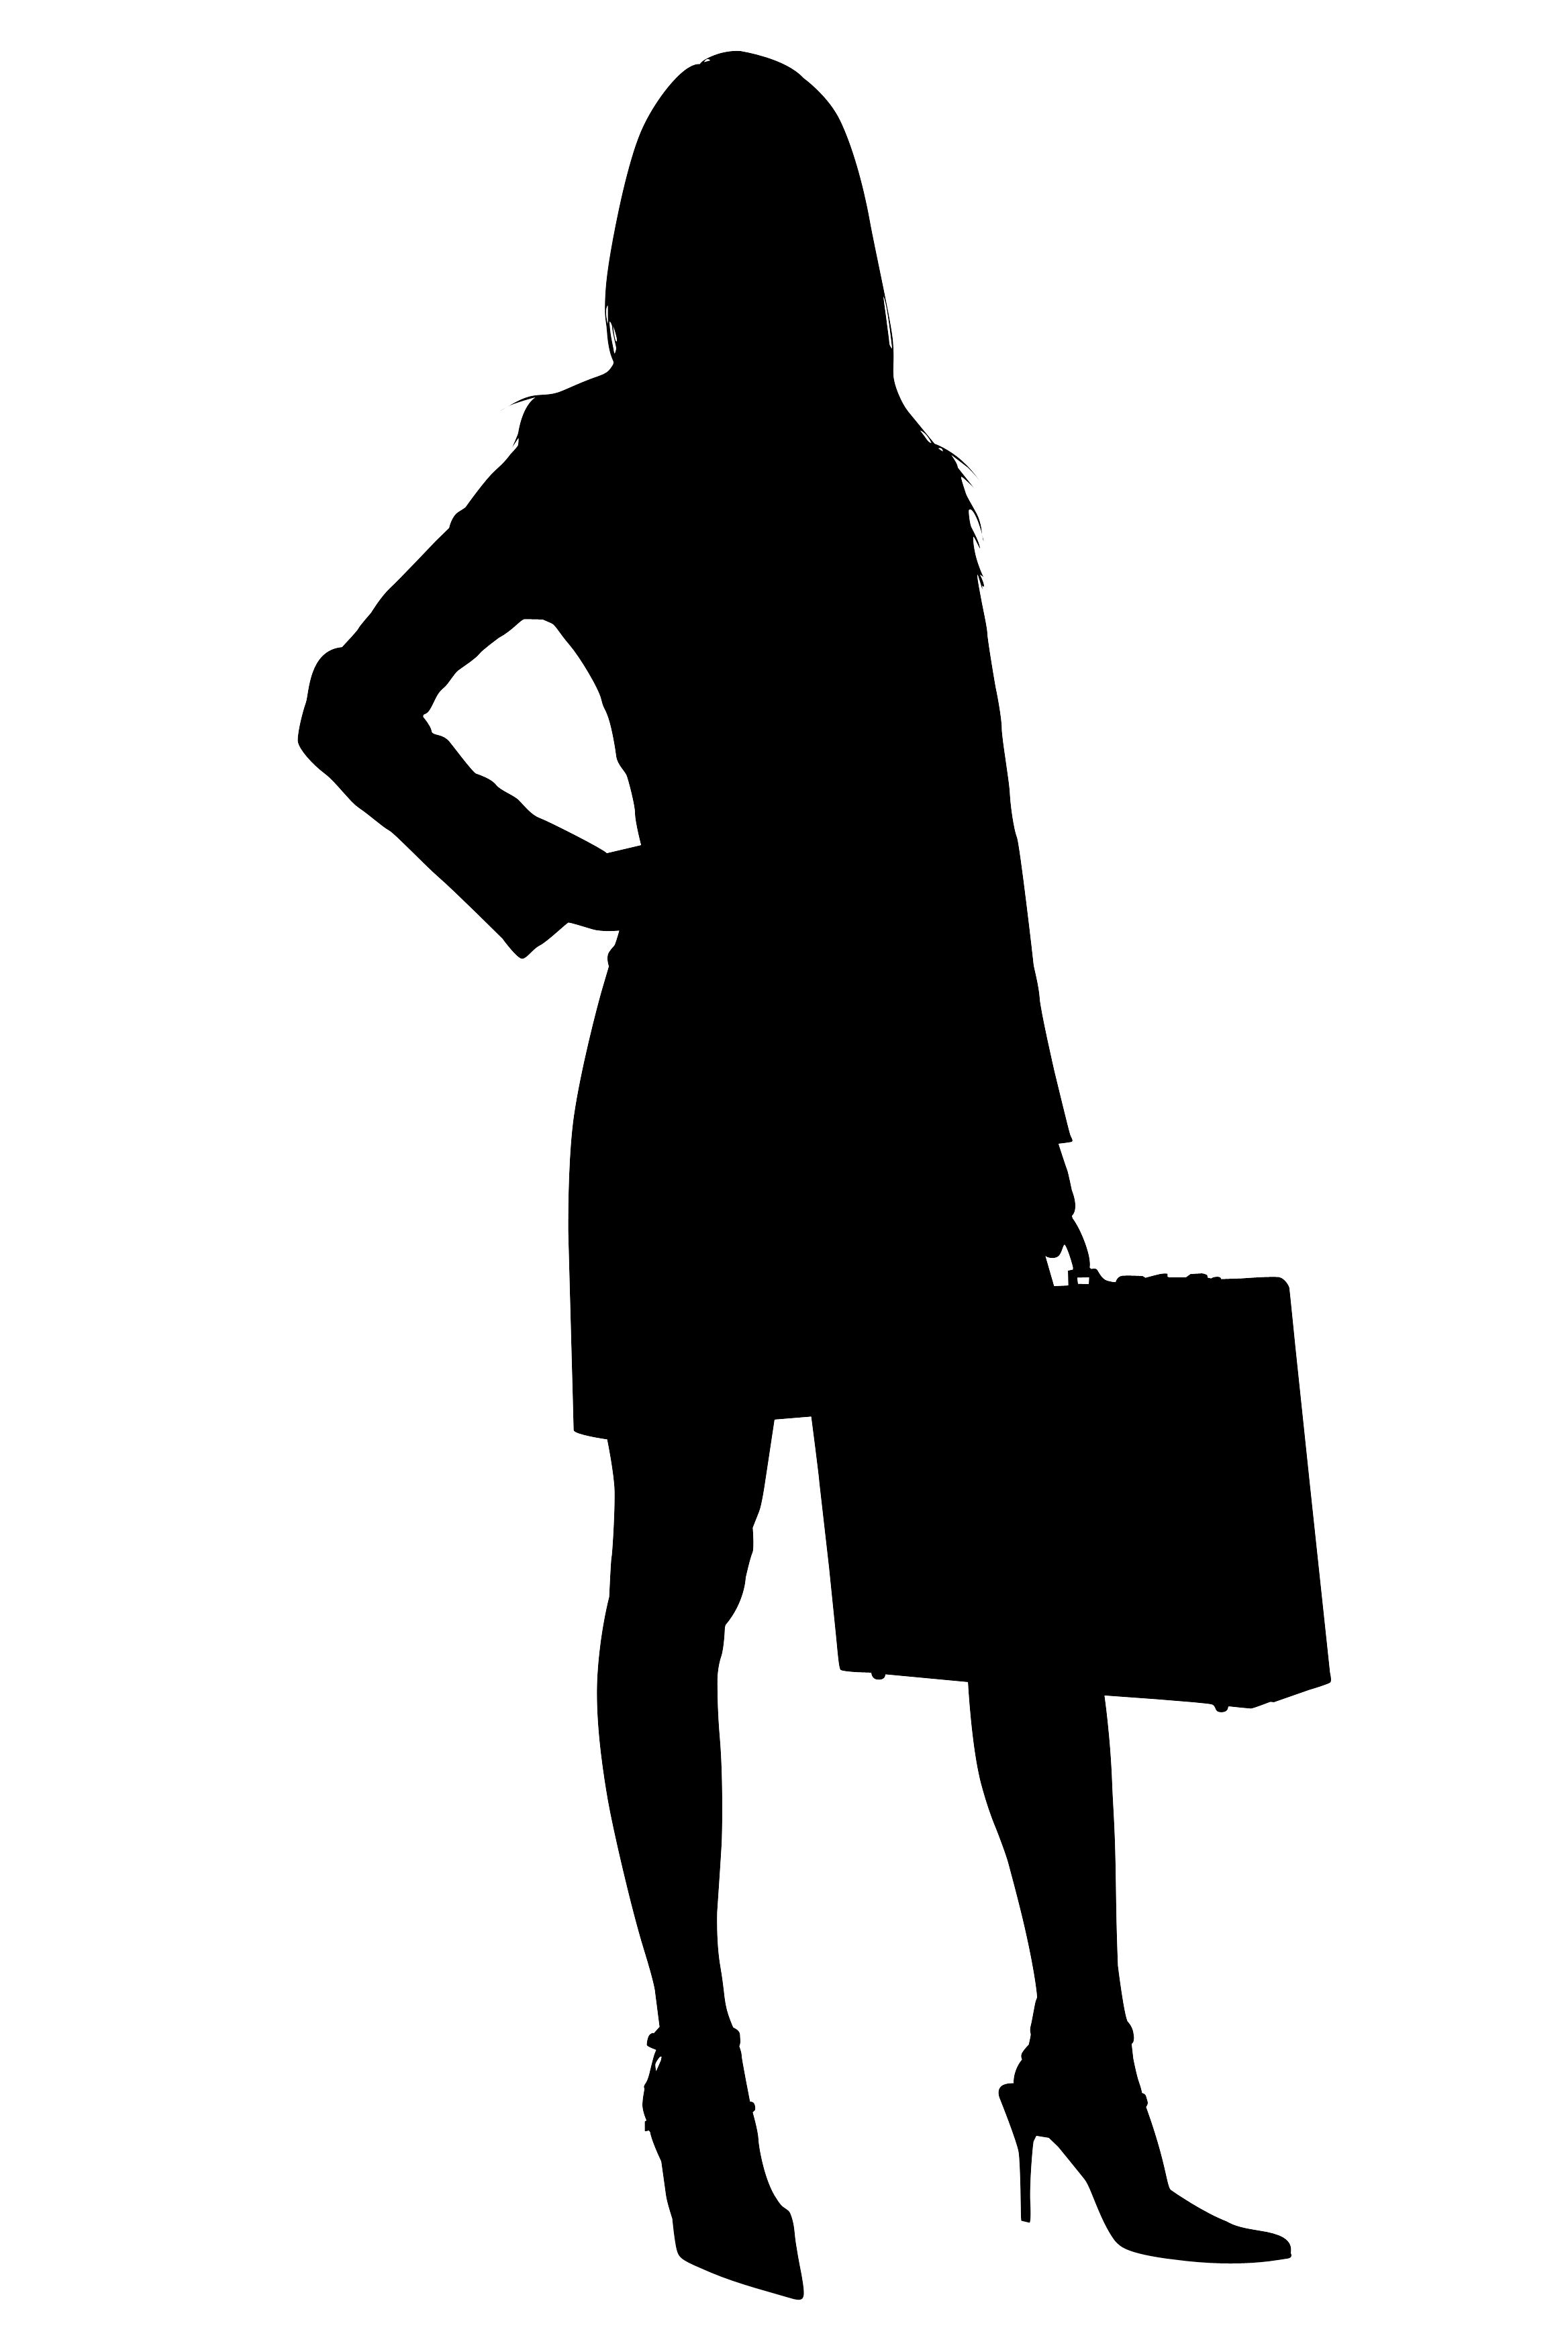 Businesswoman clipart black female lawyer. Silhouette with clipping path